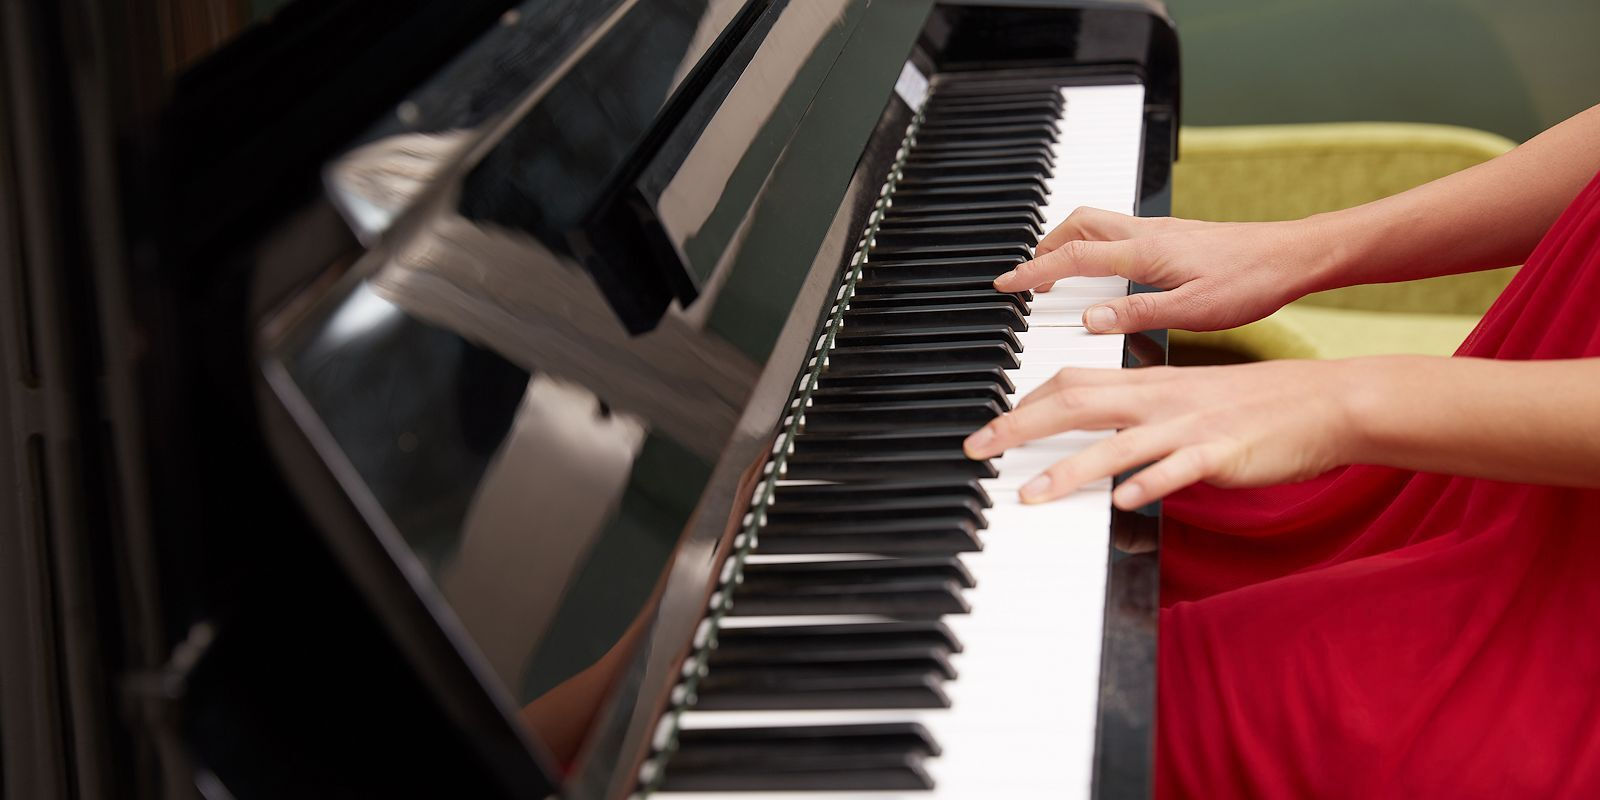 learn to play piano